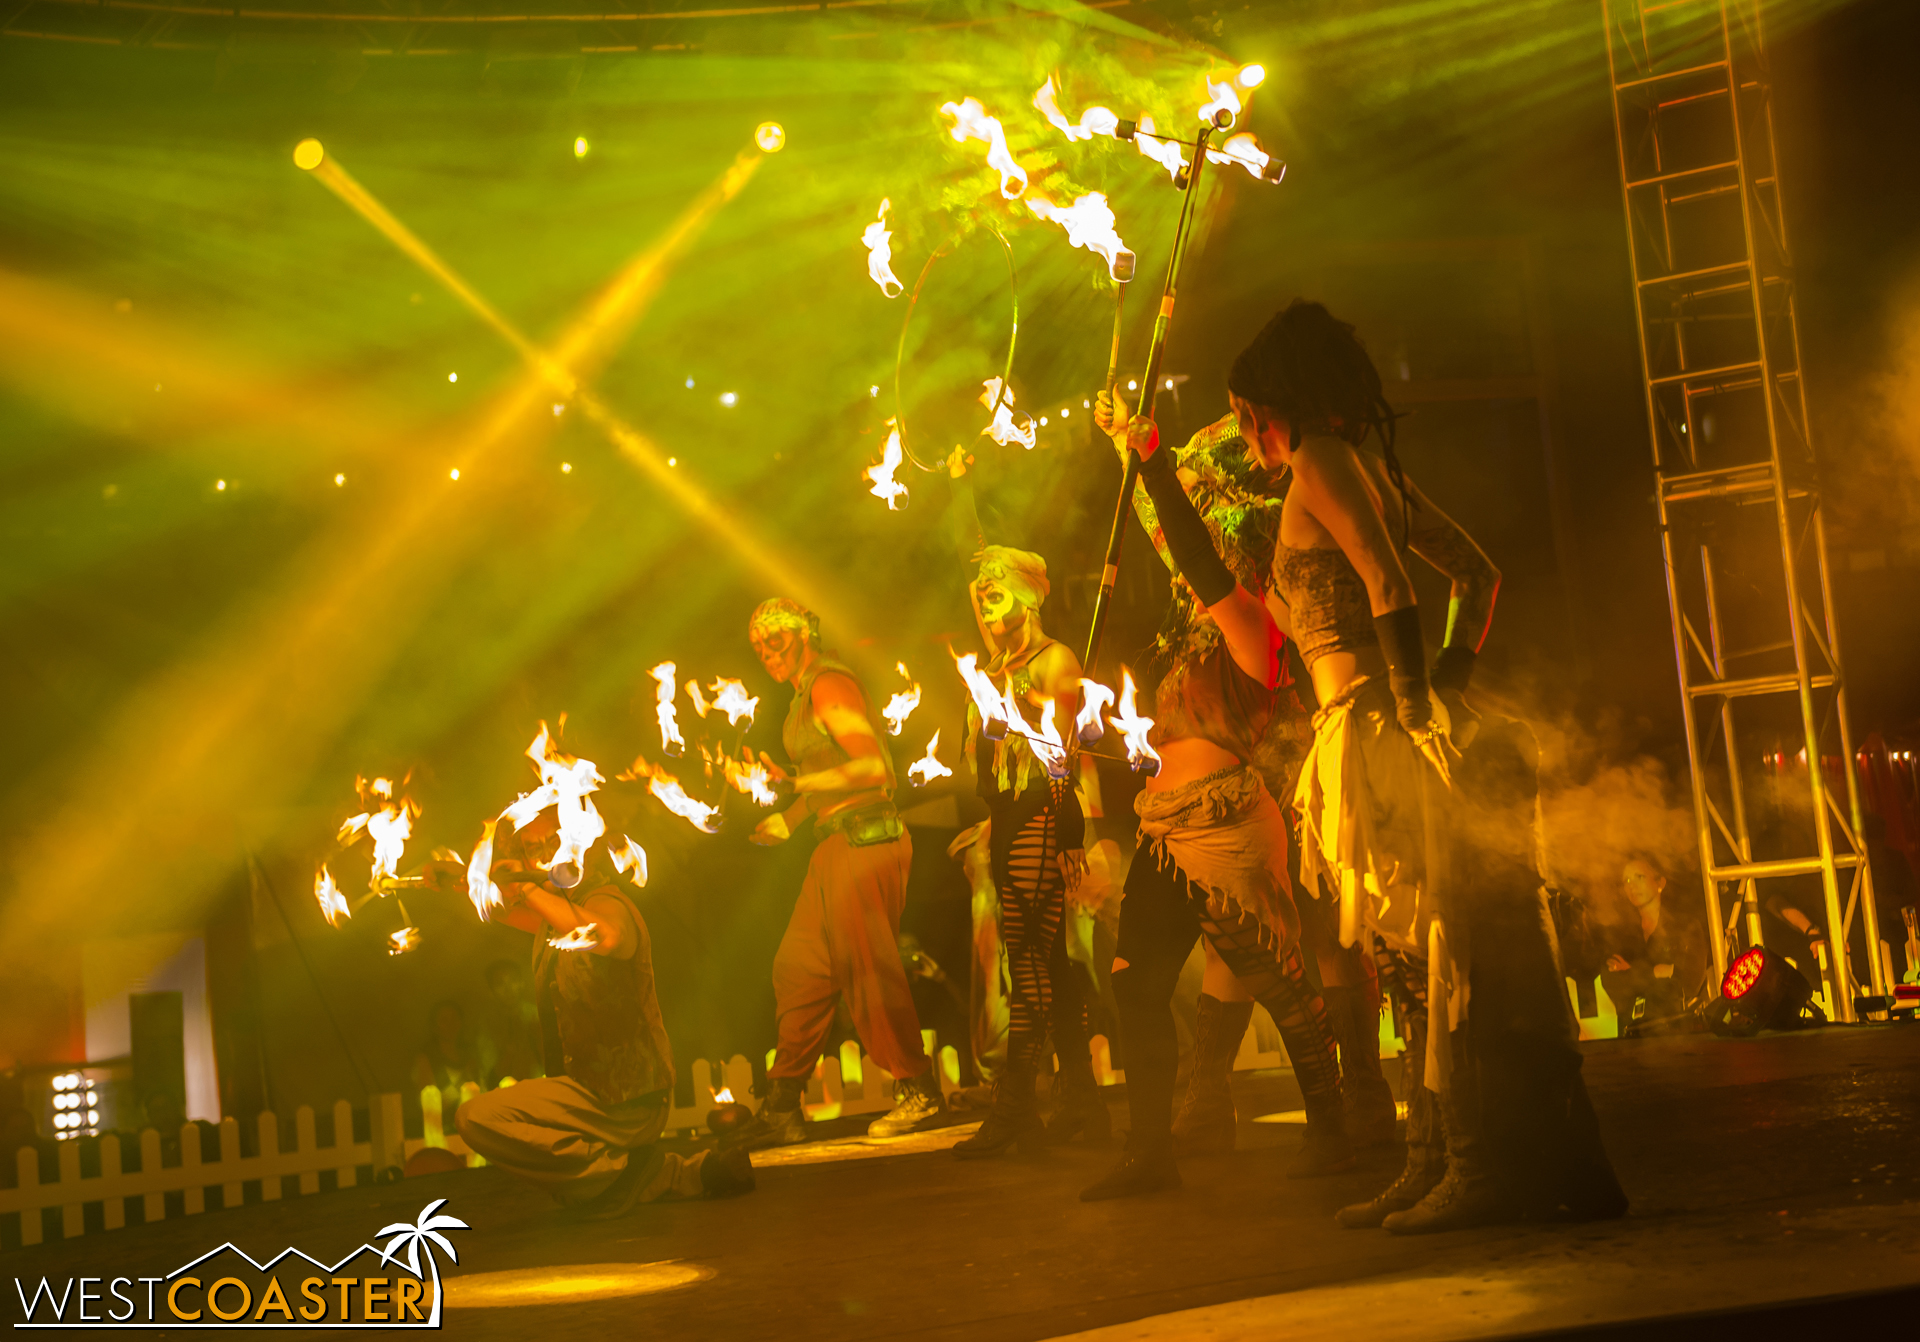 The flame bearers have a great show with plenty of fiery tricks and choreography.